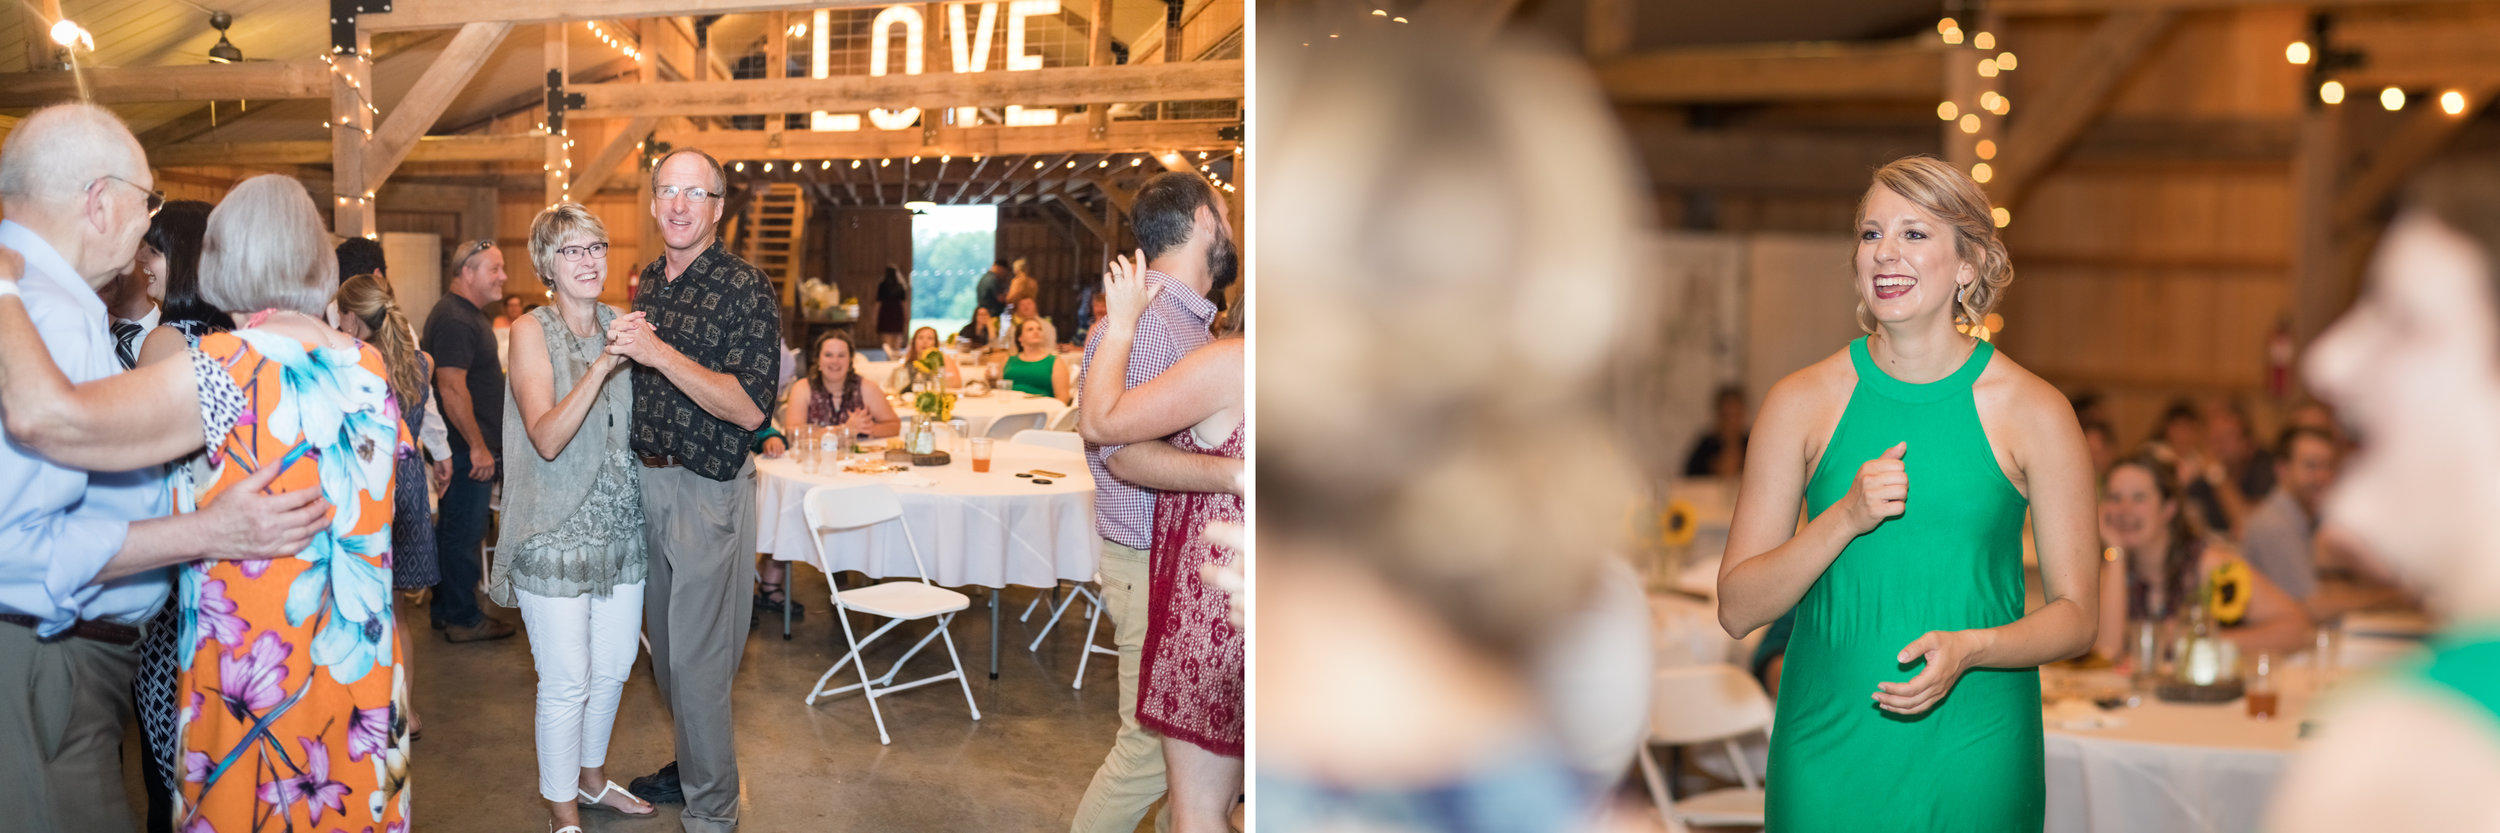 Bentonville Wedding Photographer Holland Barn 18.jpg